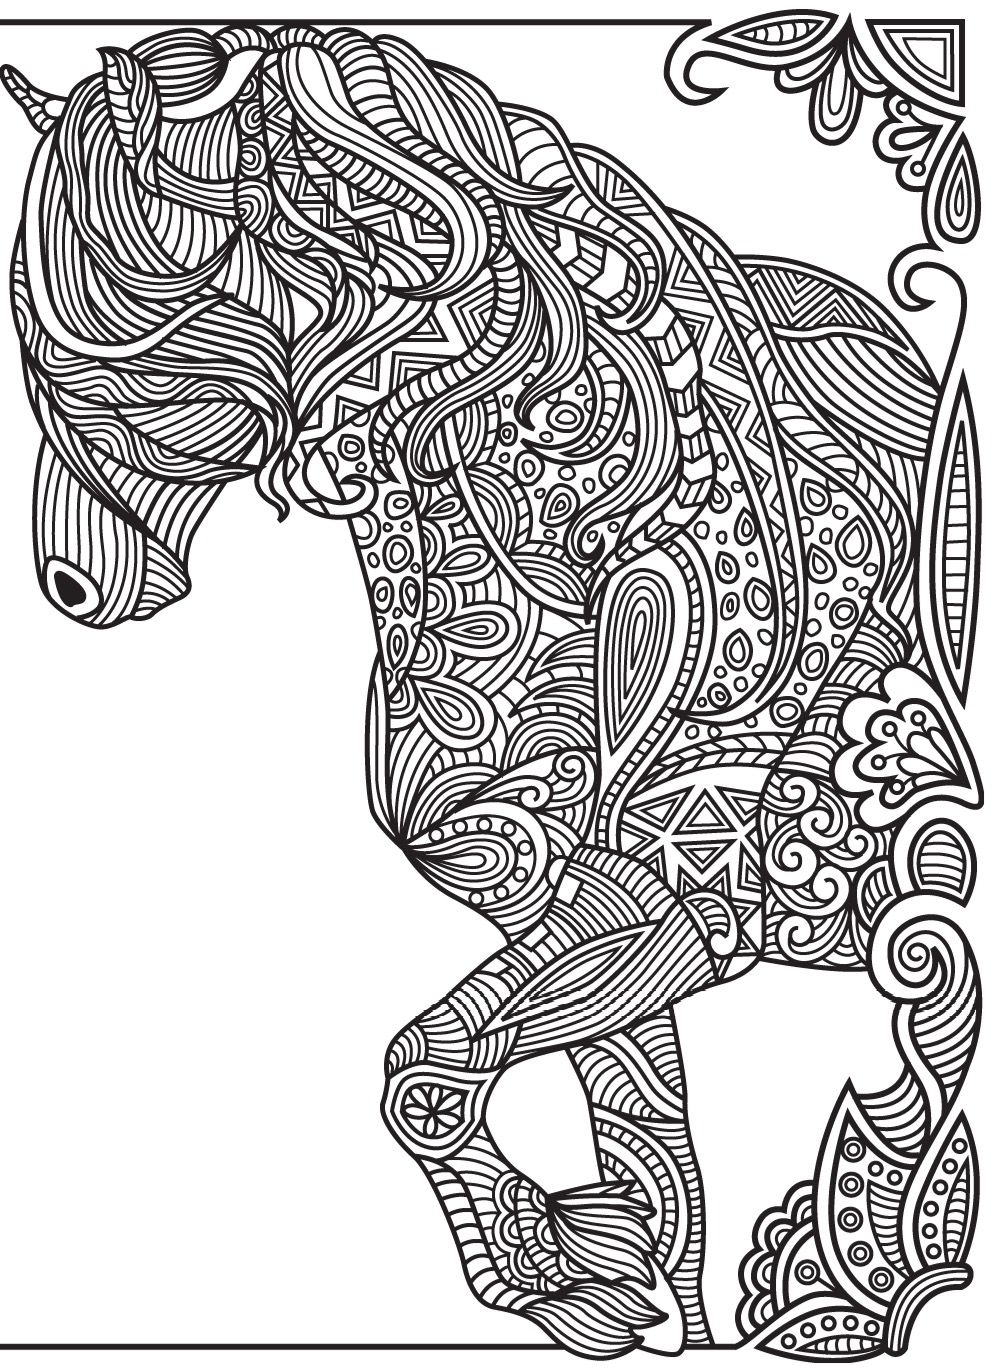 horses colorish coloring book app for adults mandala relax by goodsofttech animal coloring. Black Bedroom Furniture Sets. Home Design Ideas